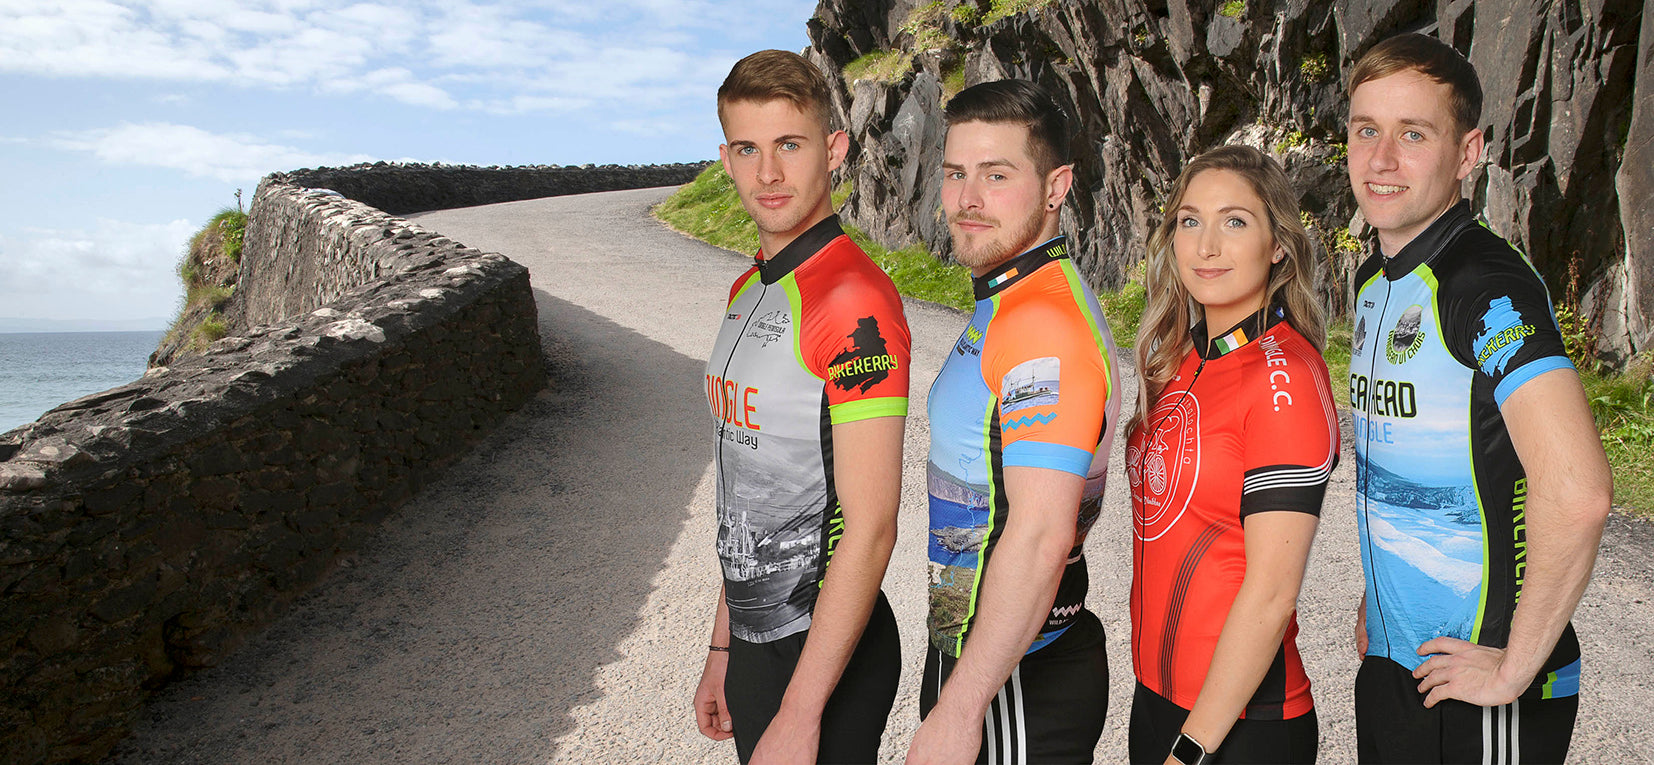 Cyclers wearing Dingle Cycle jerseys on the Slea head